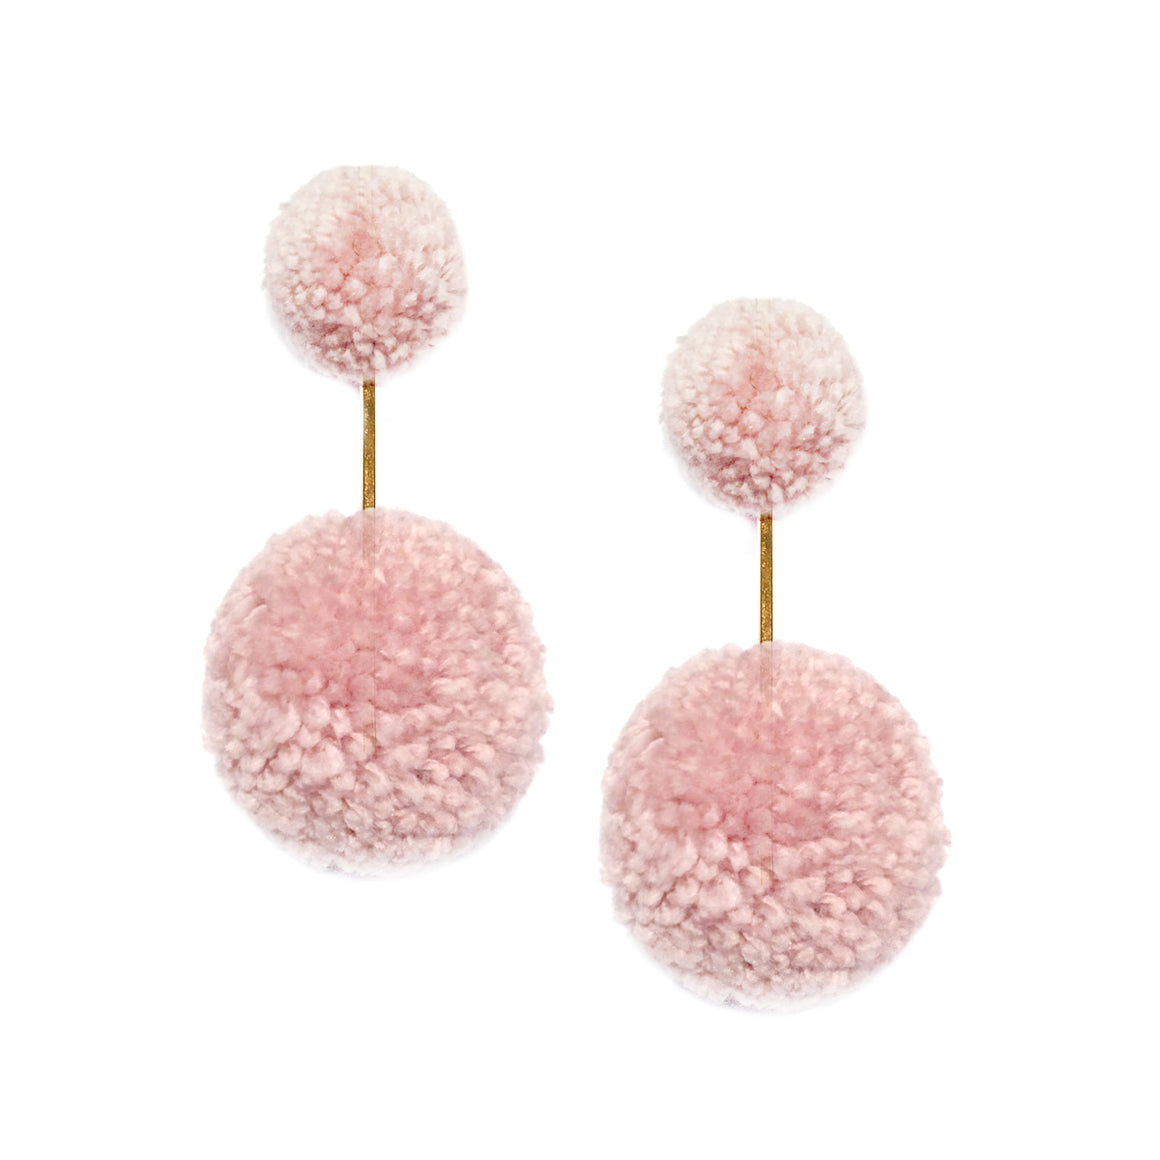 ROSY CHEEKS YARN DOUBLE POM POM EARRINGS